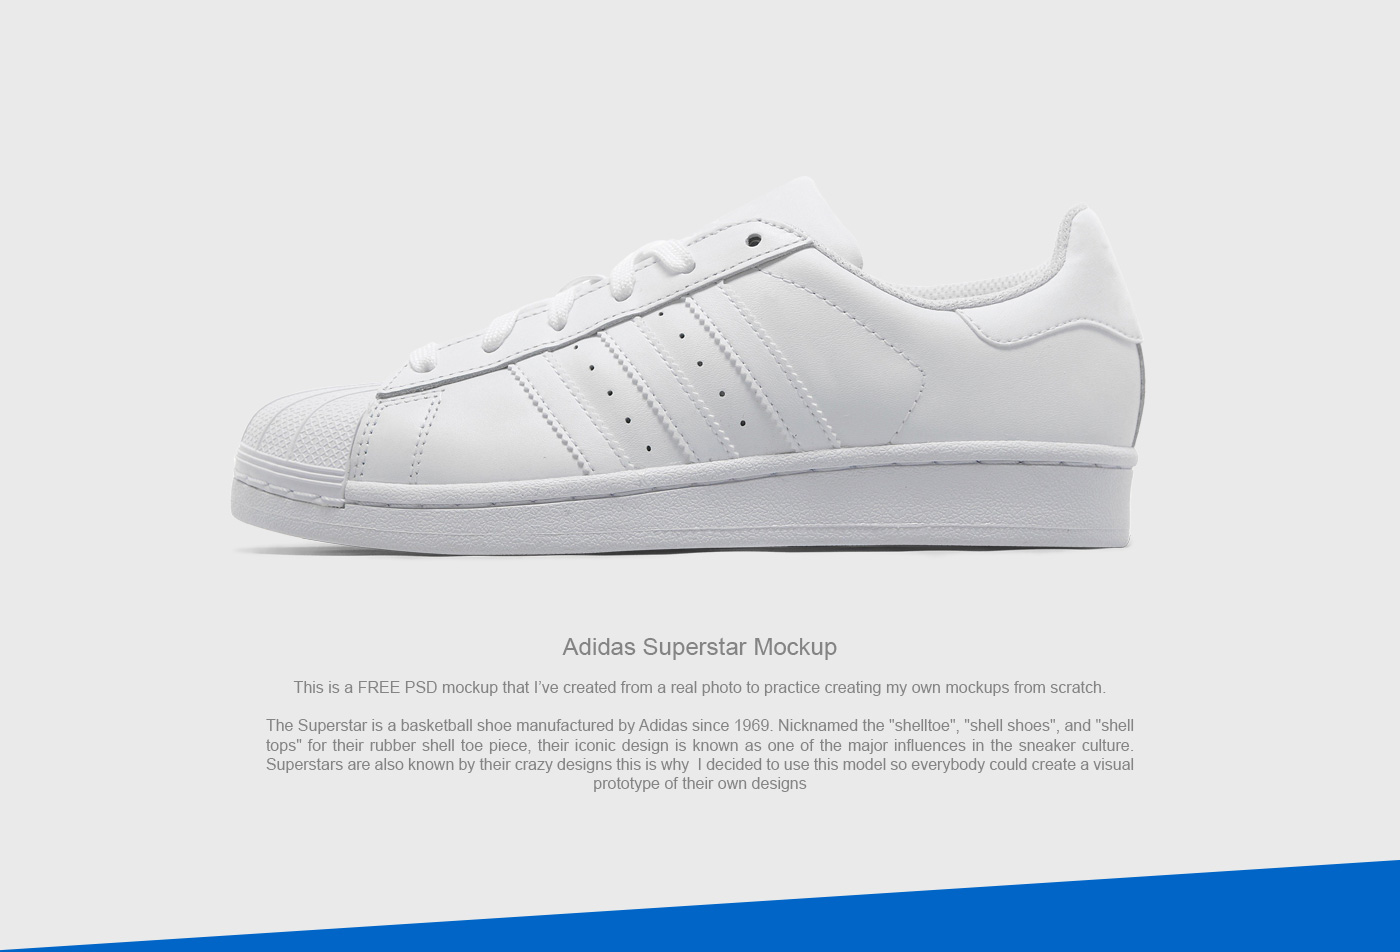 nouvelle arrivee 87a85 dc568 FREE PSD Mockup - Adidas Superstar on Behance